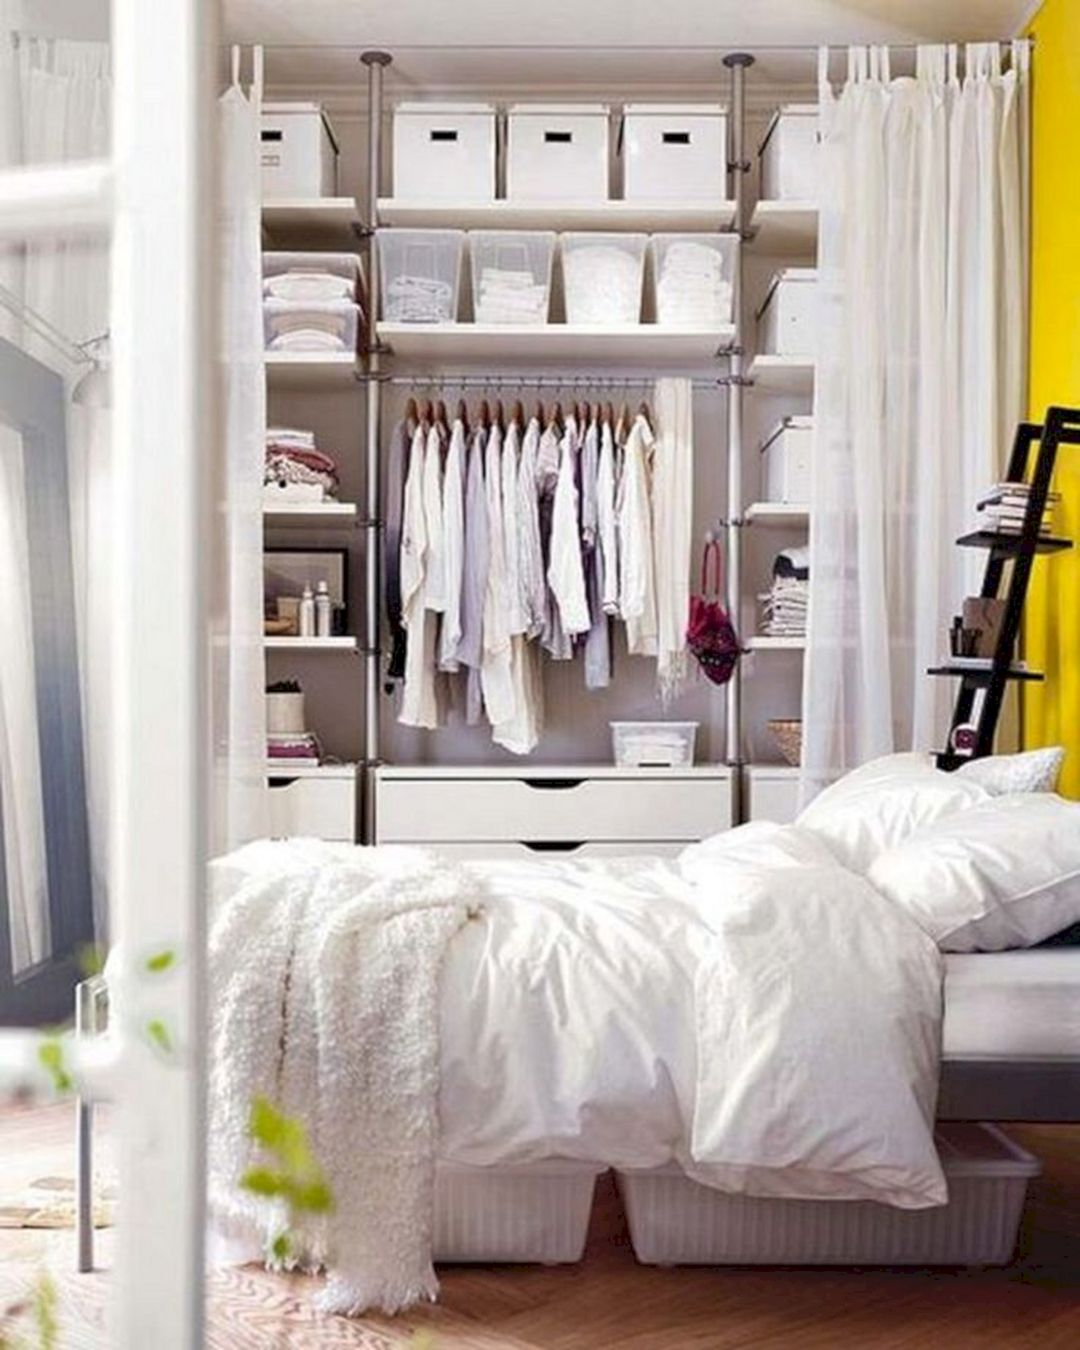 IKEA BEDROOM STORAGE HACK